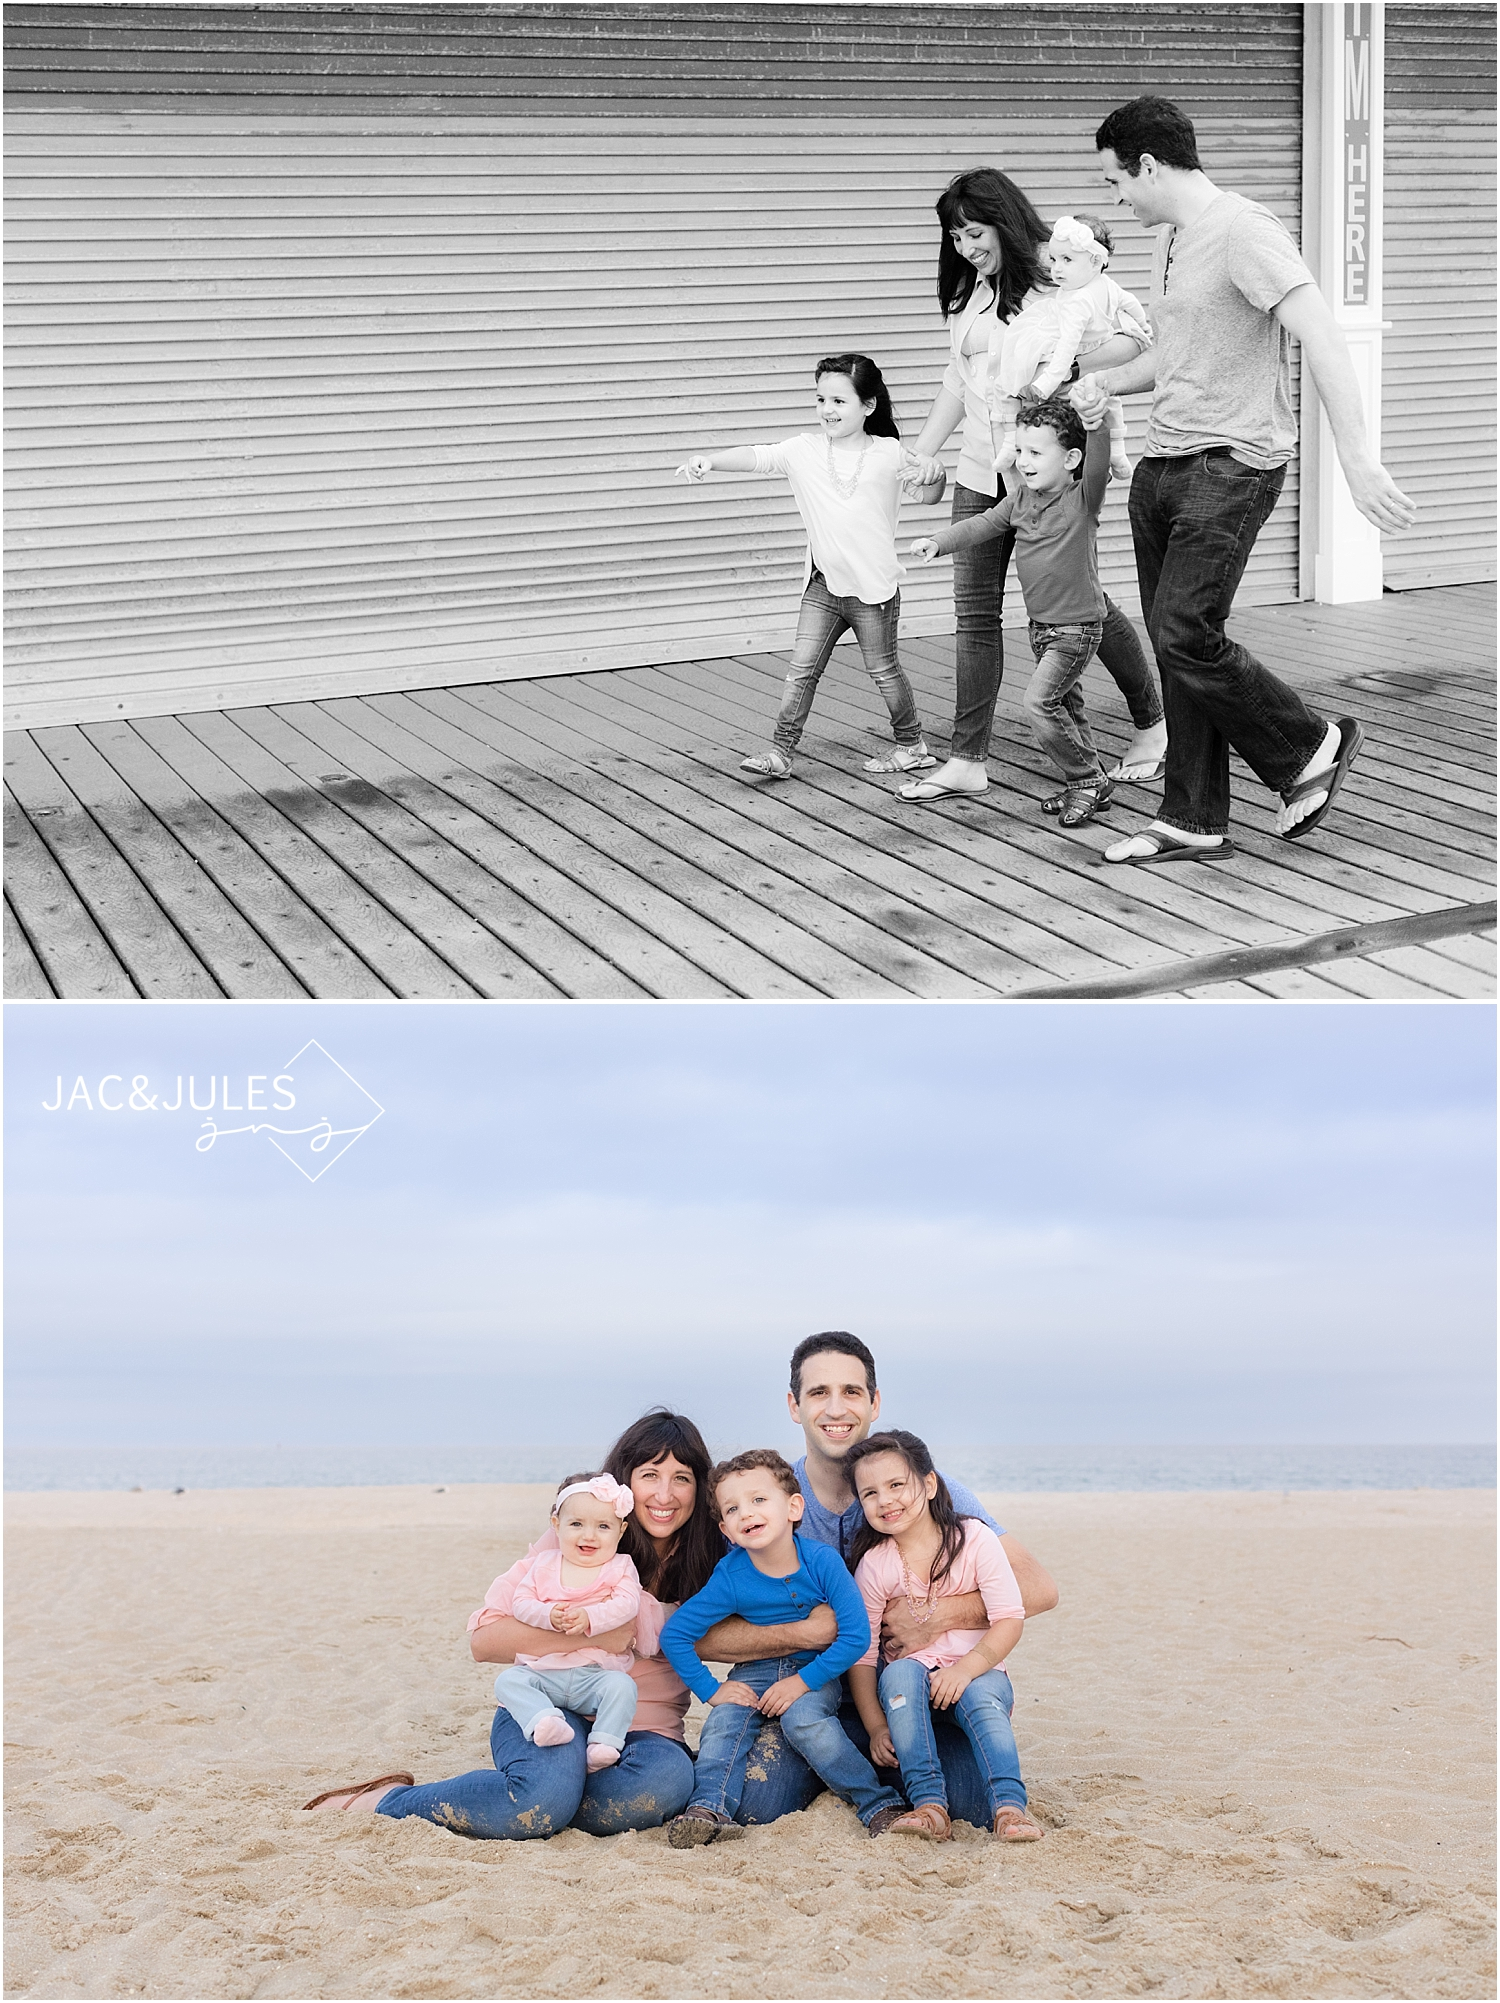 jacnjules photograph modern family in point pleasant nj